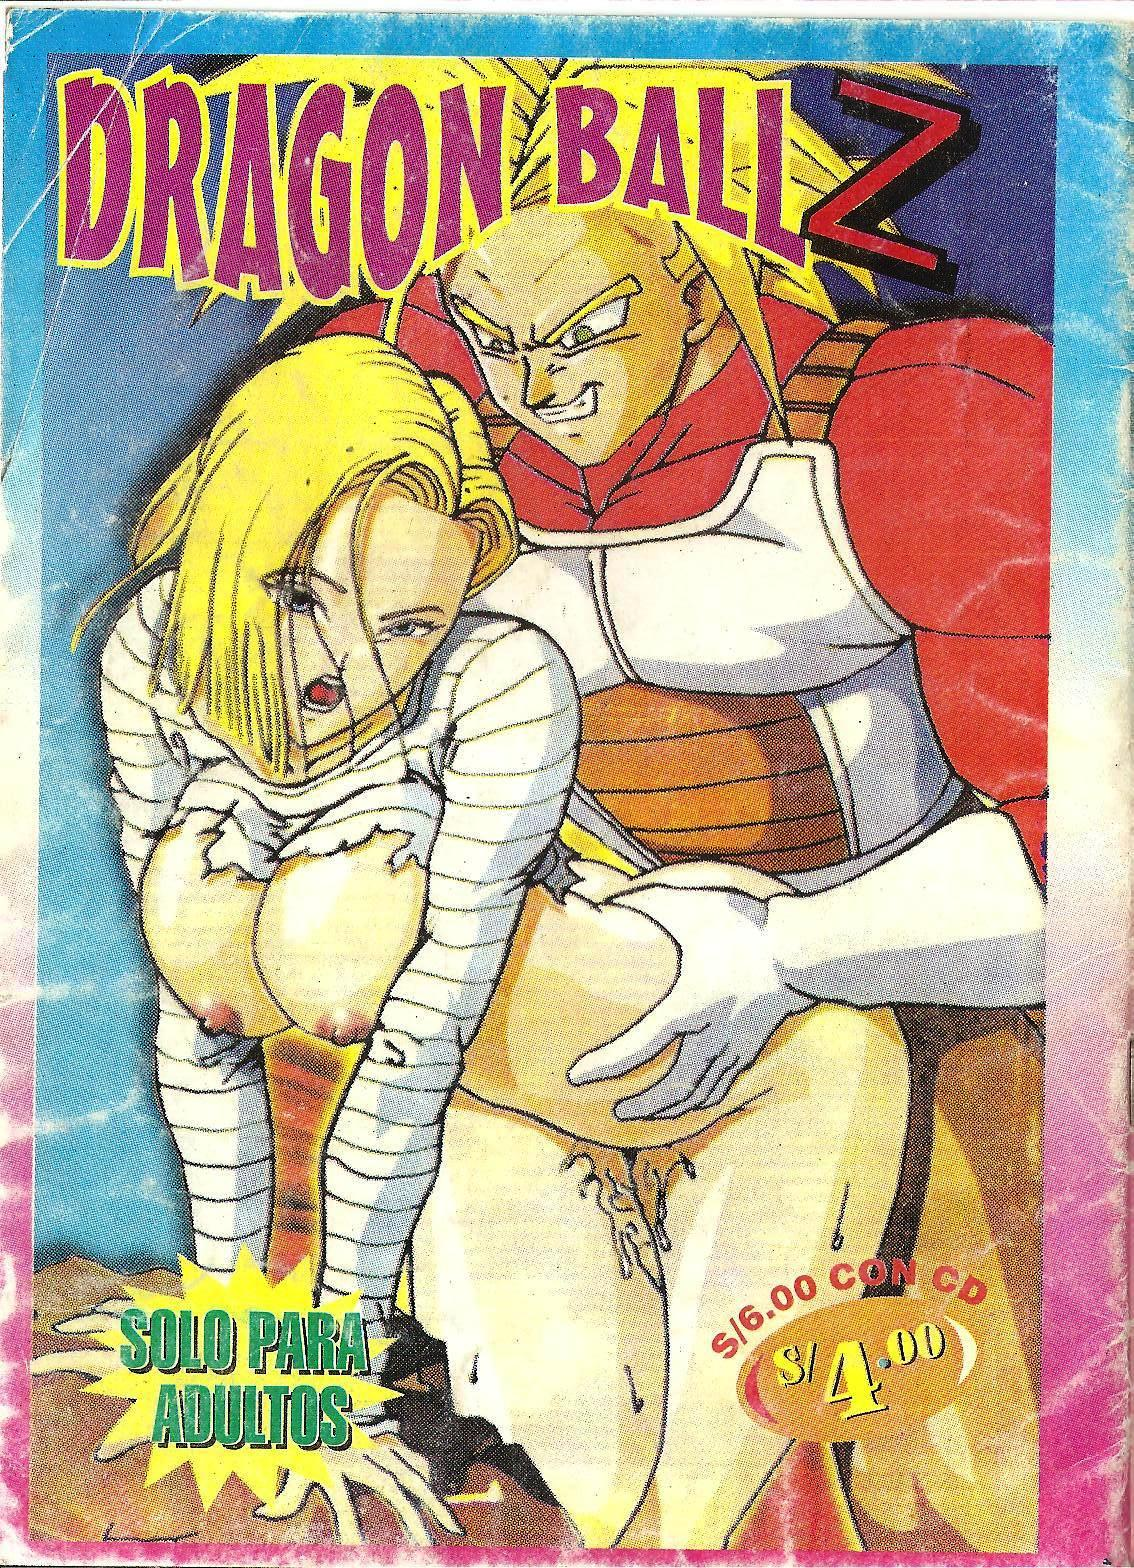 Comic porno de Dragon ball